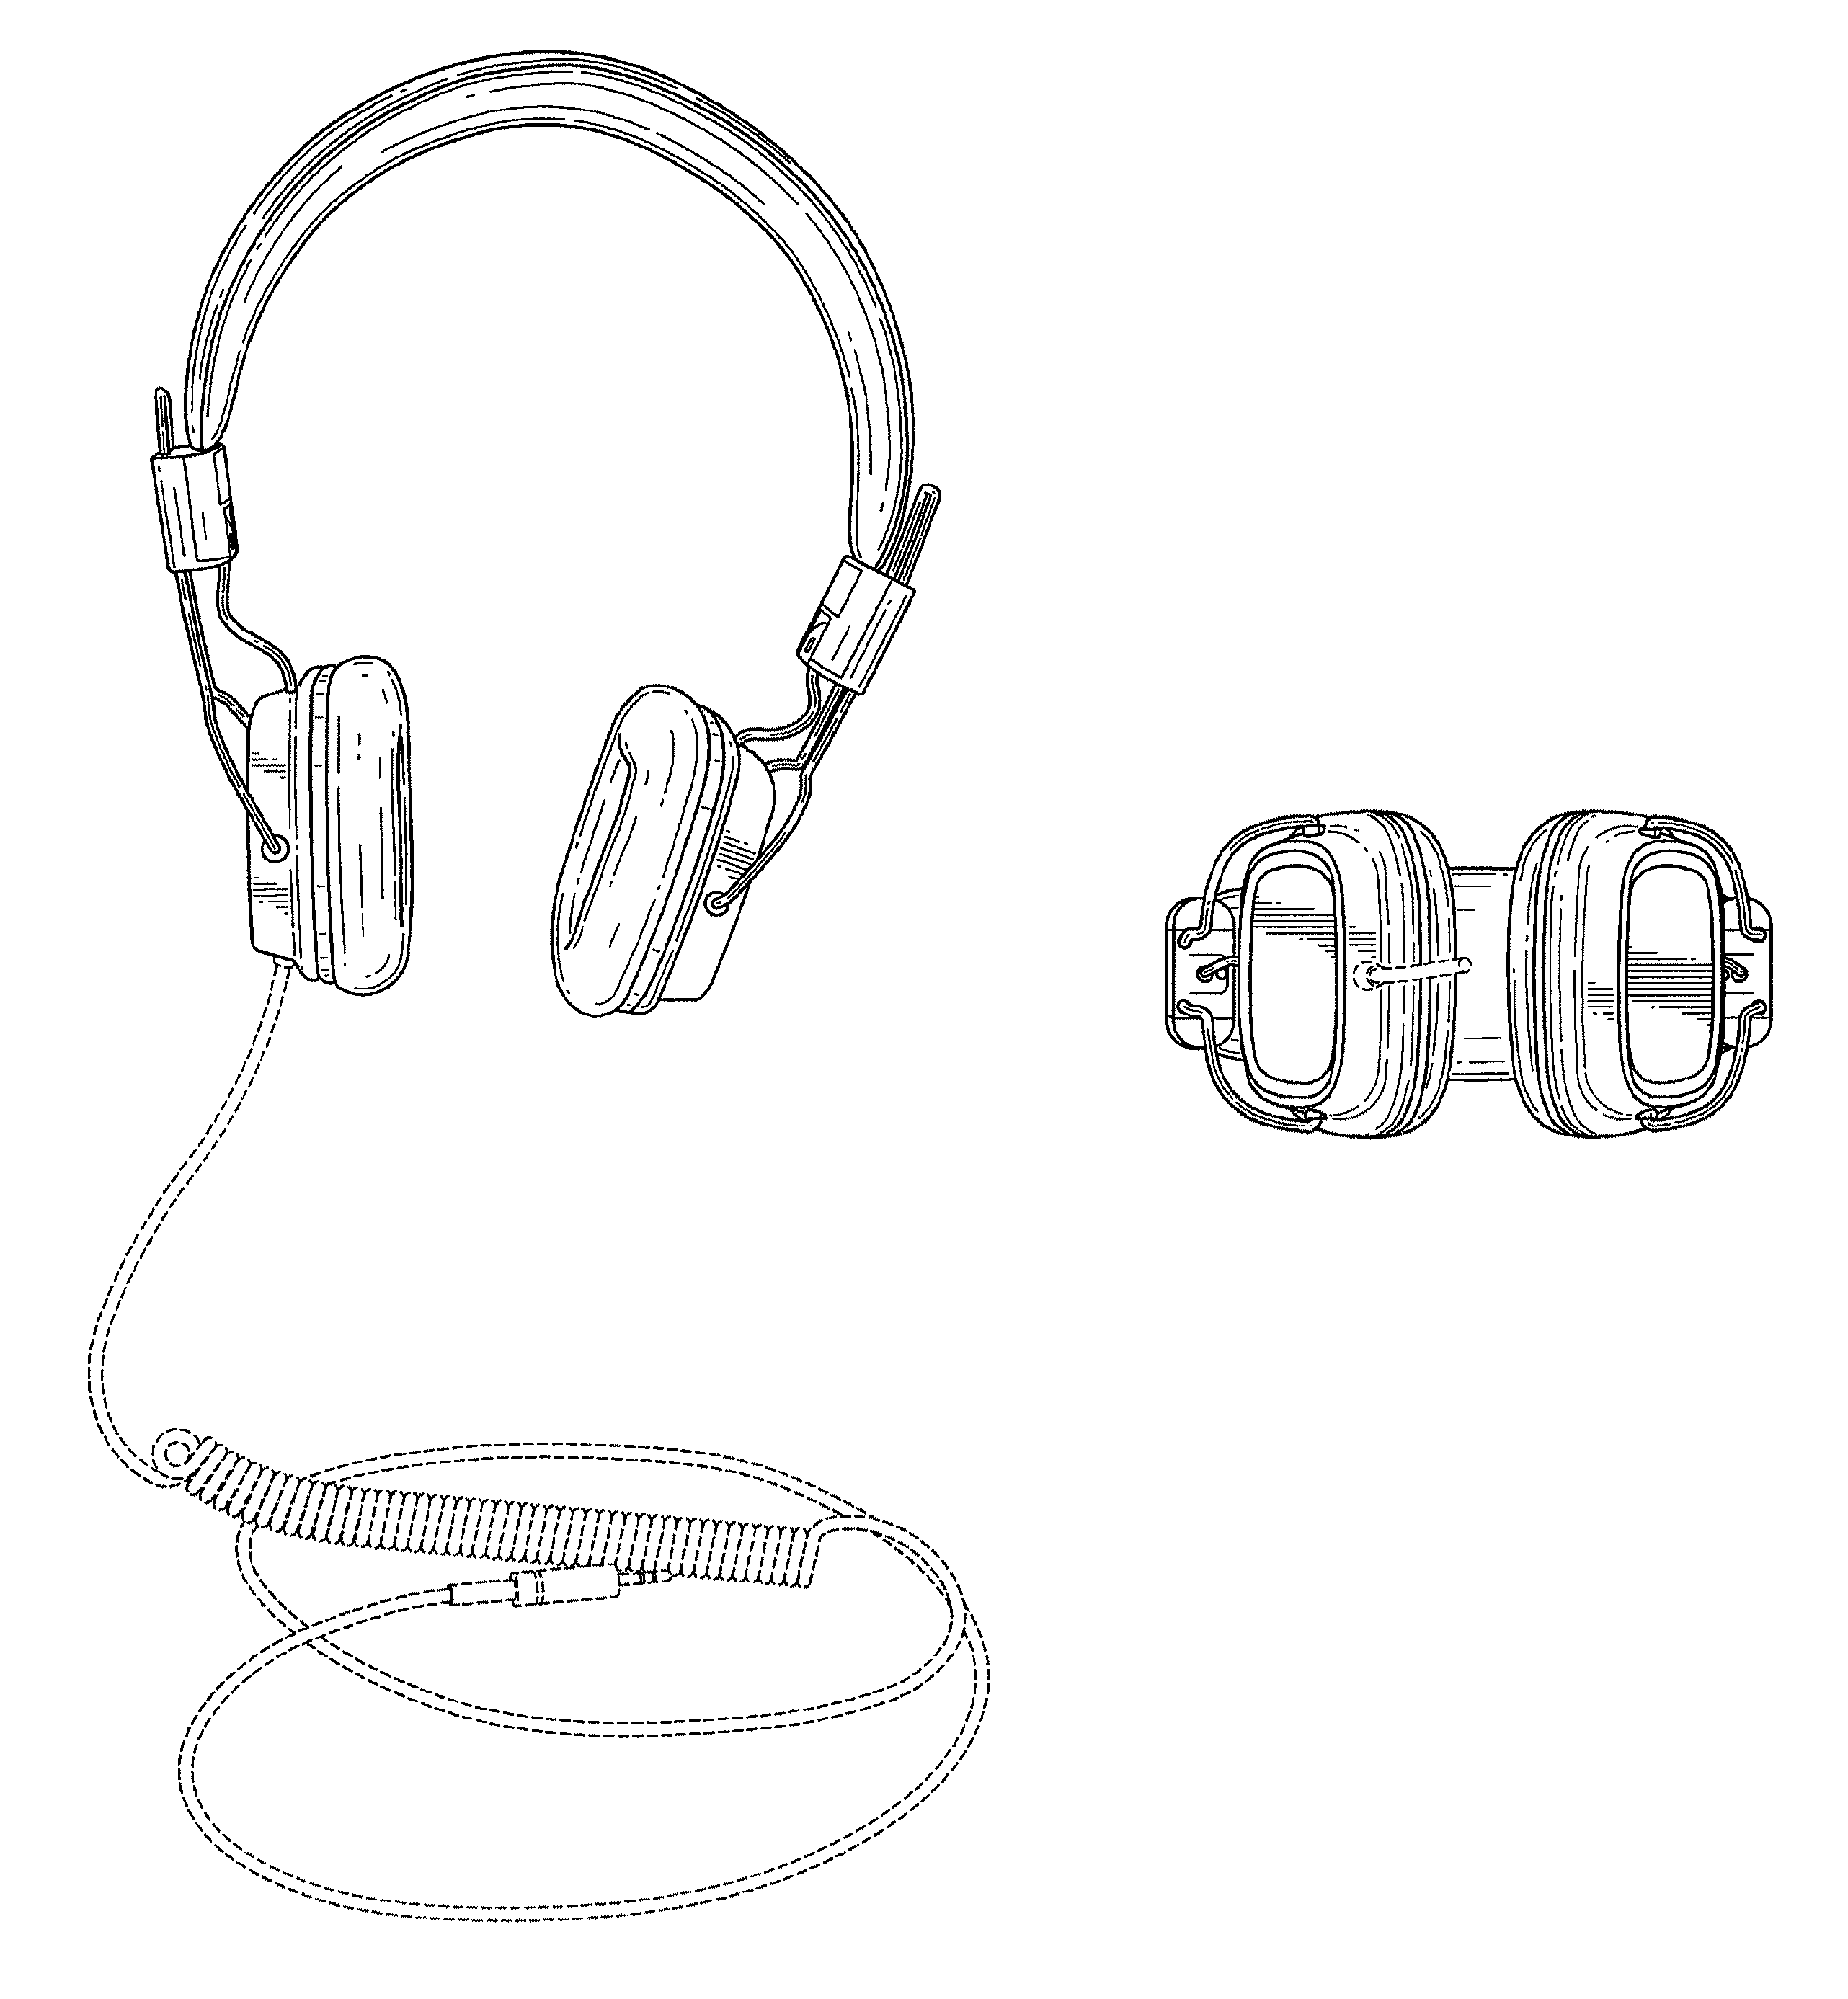 Headphones drawing simple